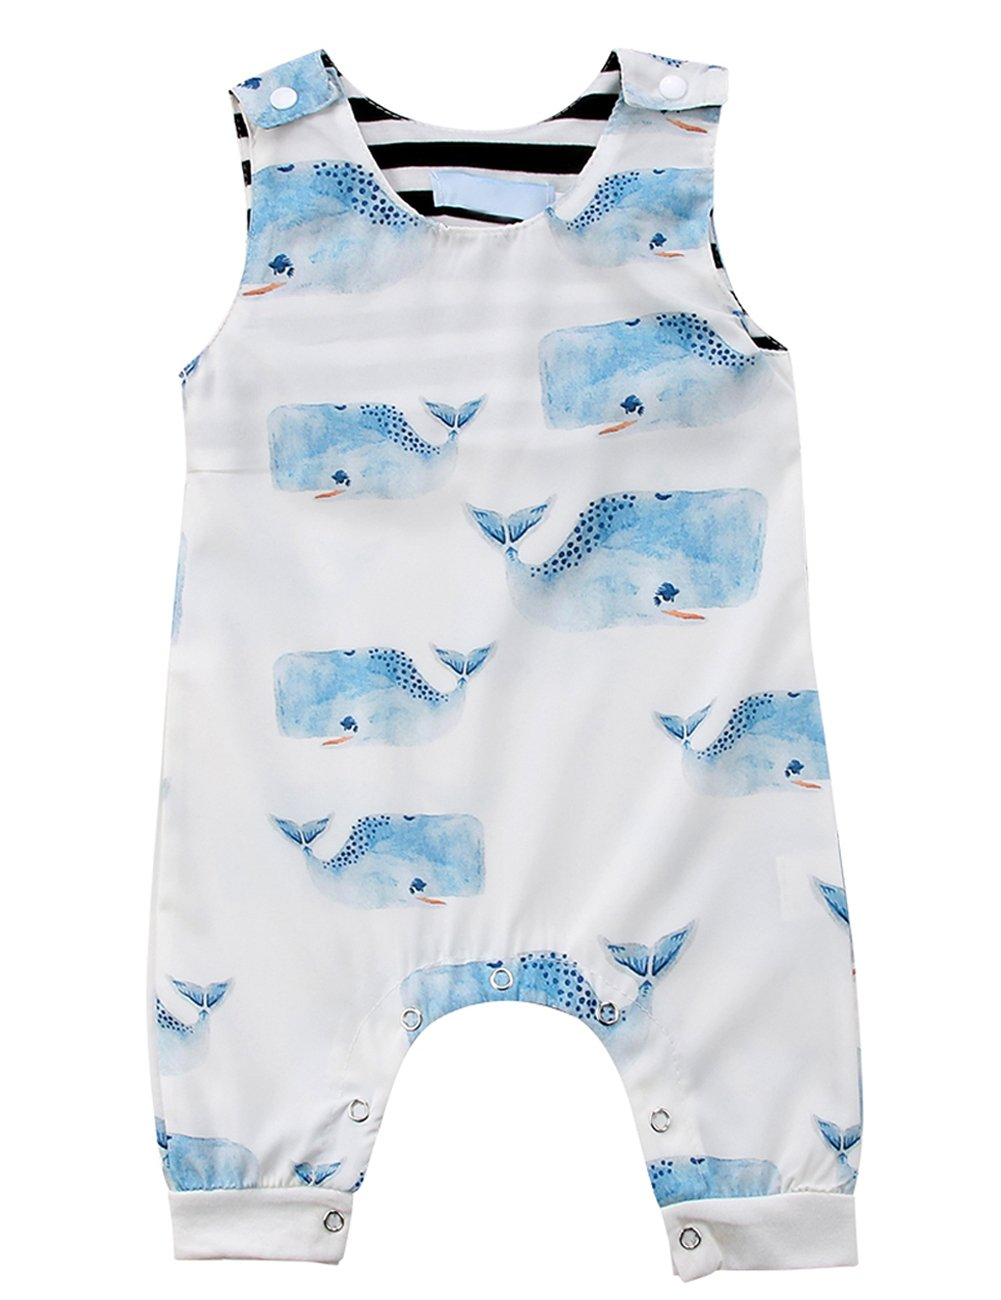 Summer Baby Boy Girl Animal Printed Sleeveless Romper One-Piece Bodysuit Jumpsuit Outfits Gray